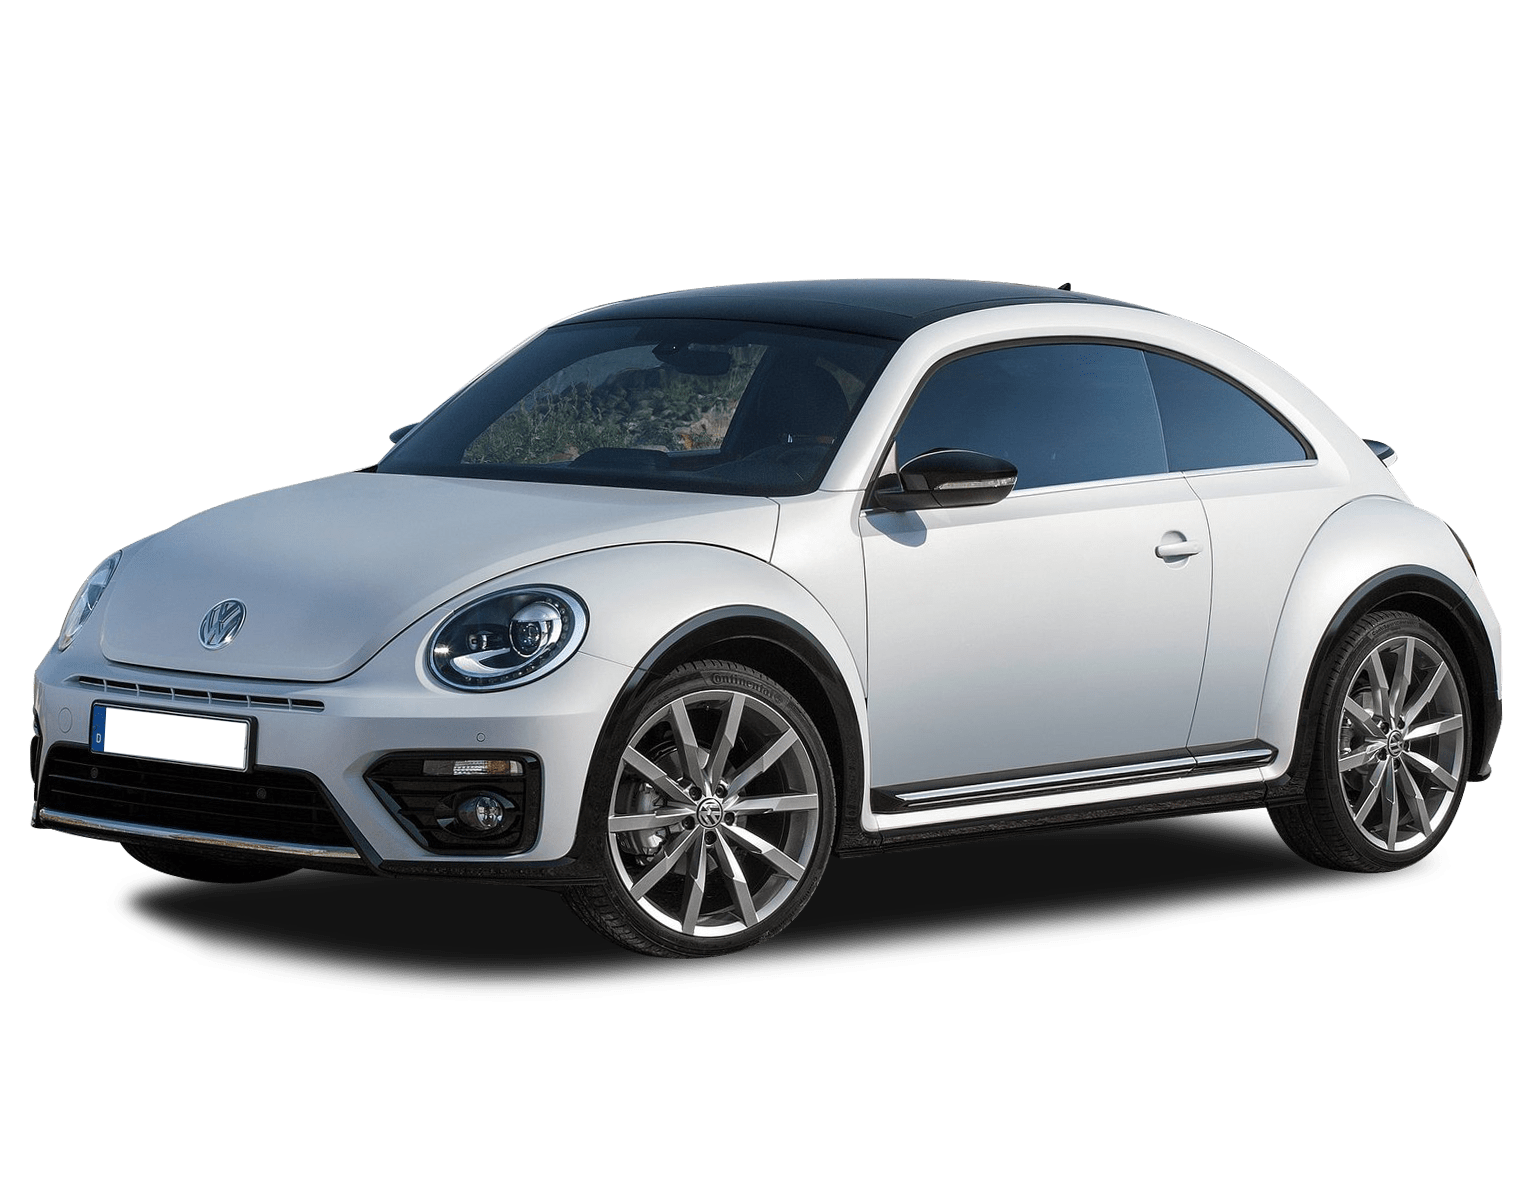 Volkswagen Beetle Reviews Carsguide Gjm Guitars Design And Build High Quality Electric